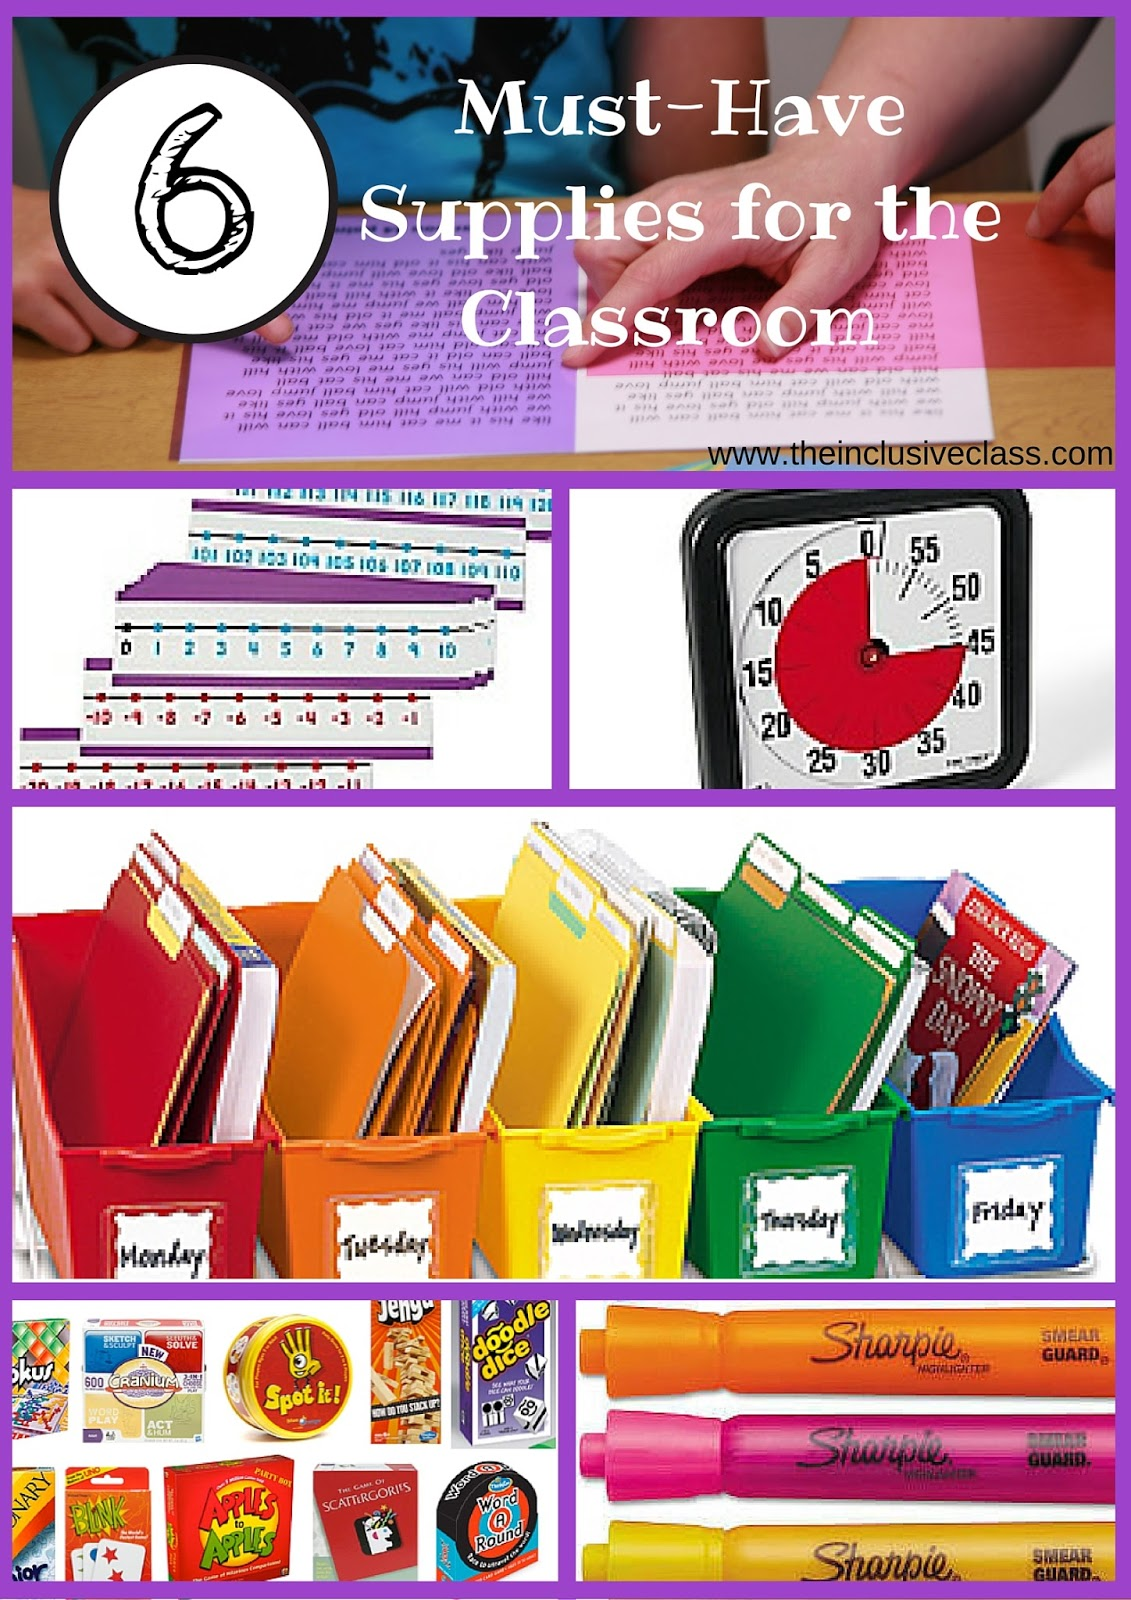 6 Must-Have Supplies for the Classroom